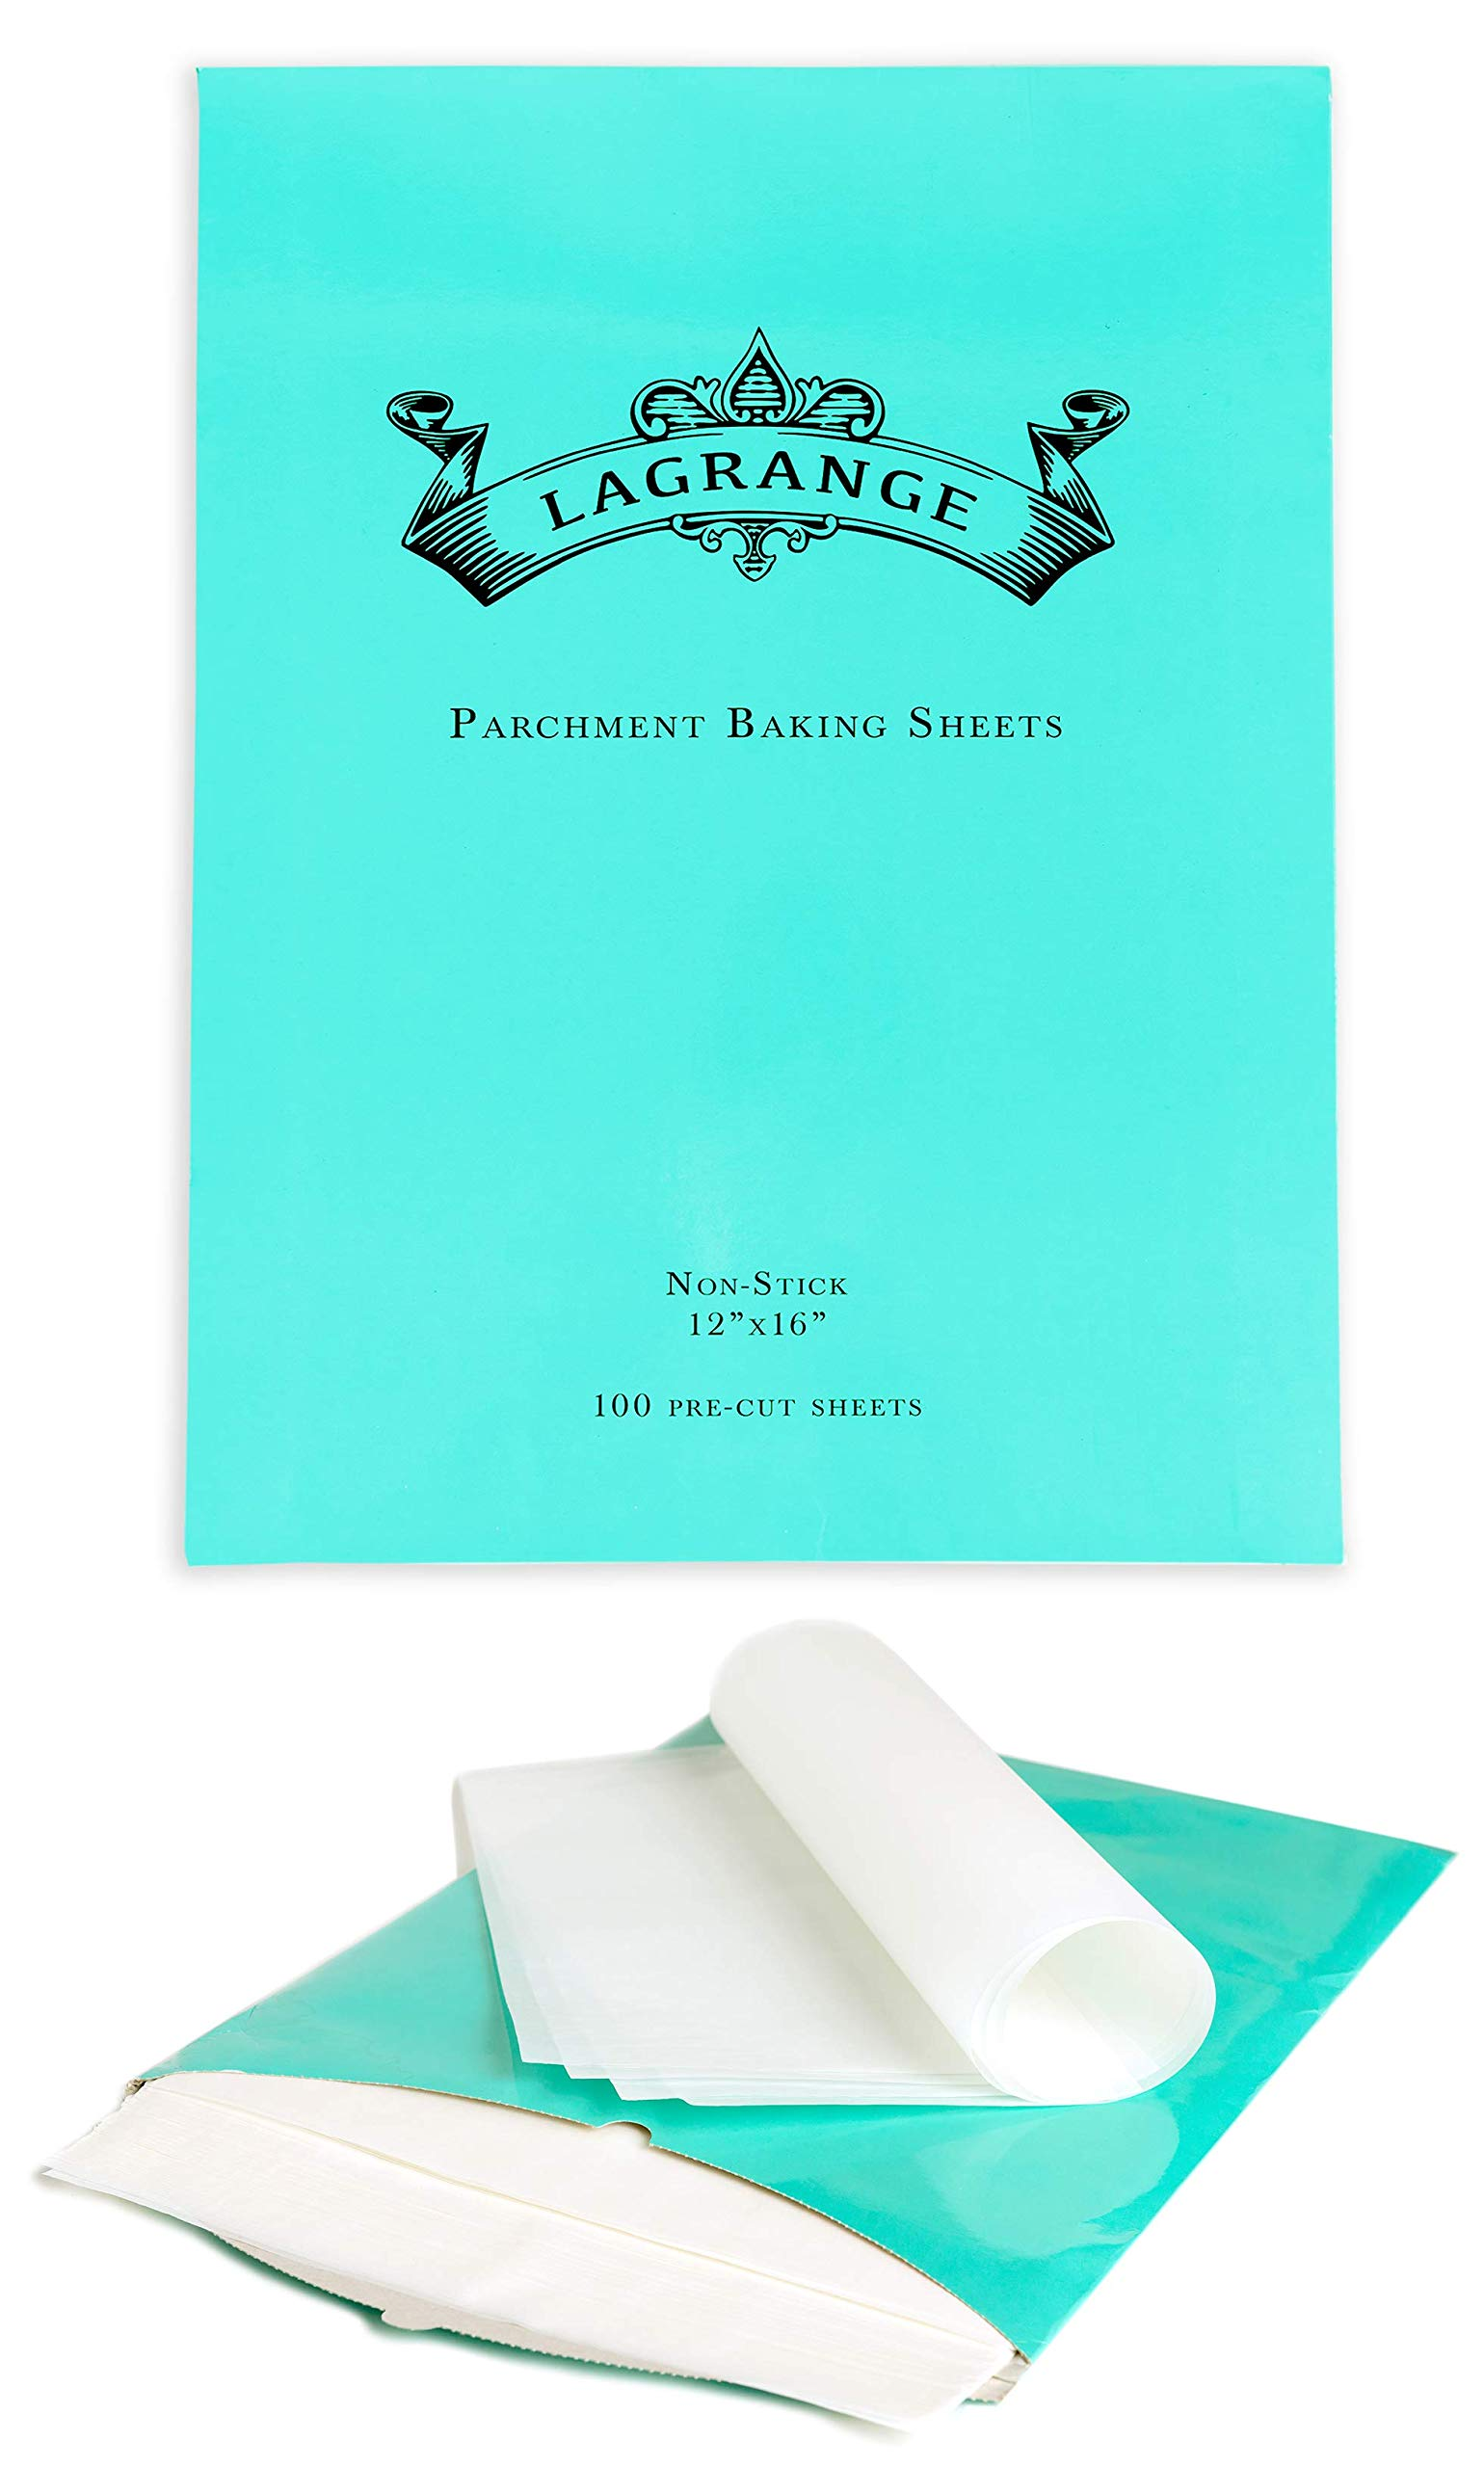 LaGrange Parchment Paper Baking Sheets - (100 pcs) - Pre-cut 12x16 inch Perfect Fit for Sheet Pans - Non-stick - Greaseproof - High Temperature Baking - Easy Storage & Use ... (White) by Lagrange